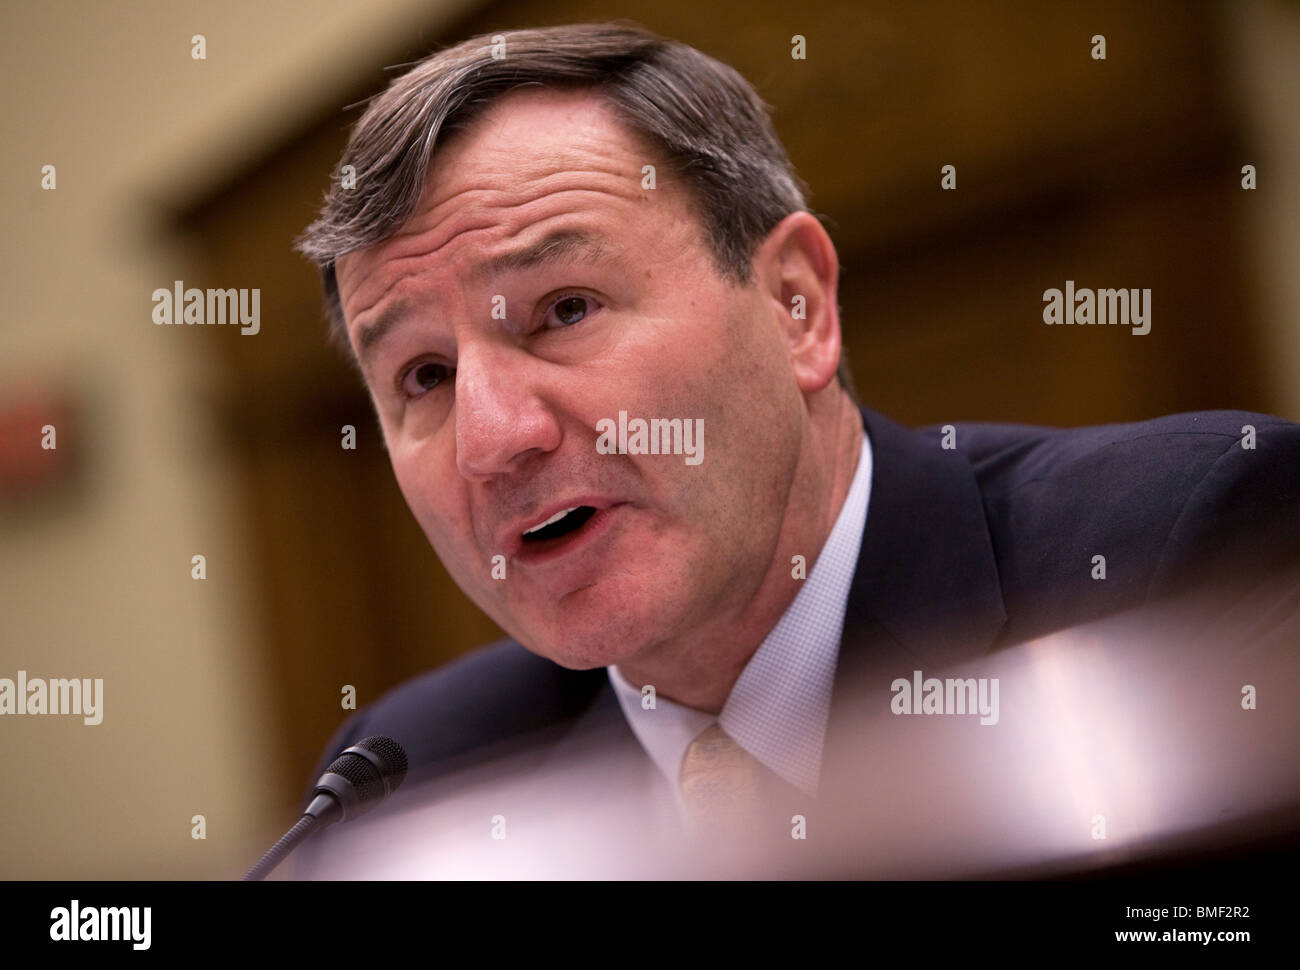 Karl Eikenberry, United States Ambassador to Afghanistan. - Stock Image